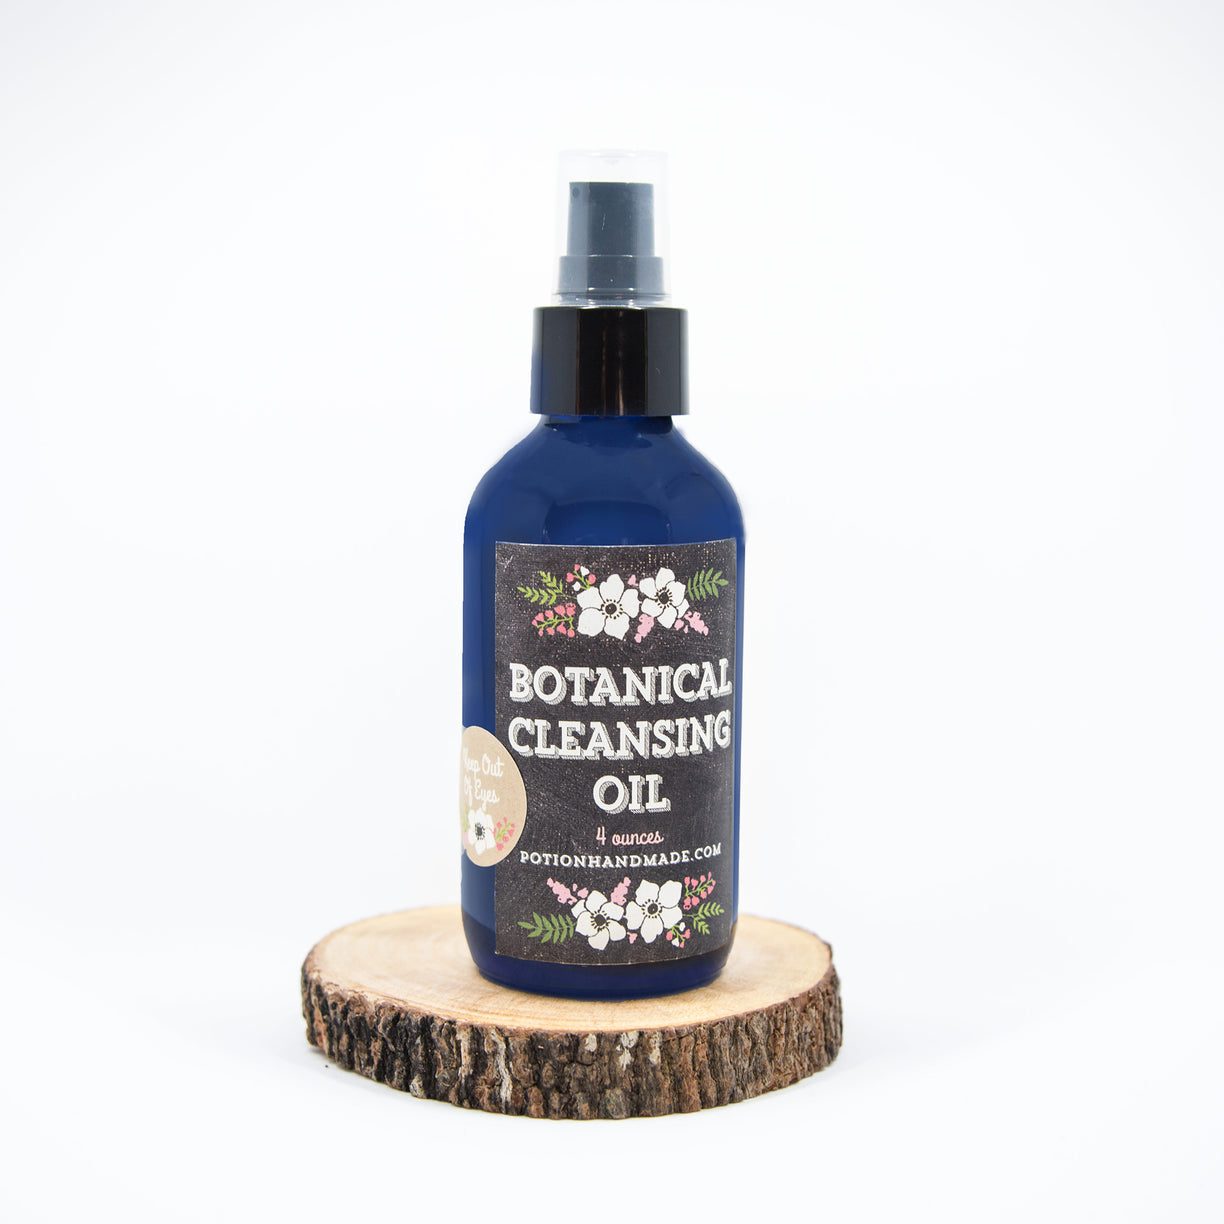 Botanical Cleansing Oil